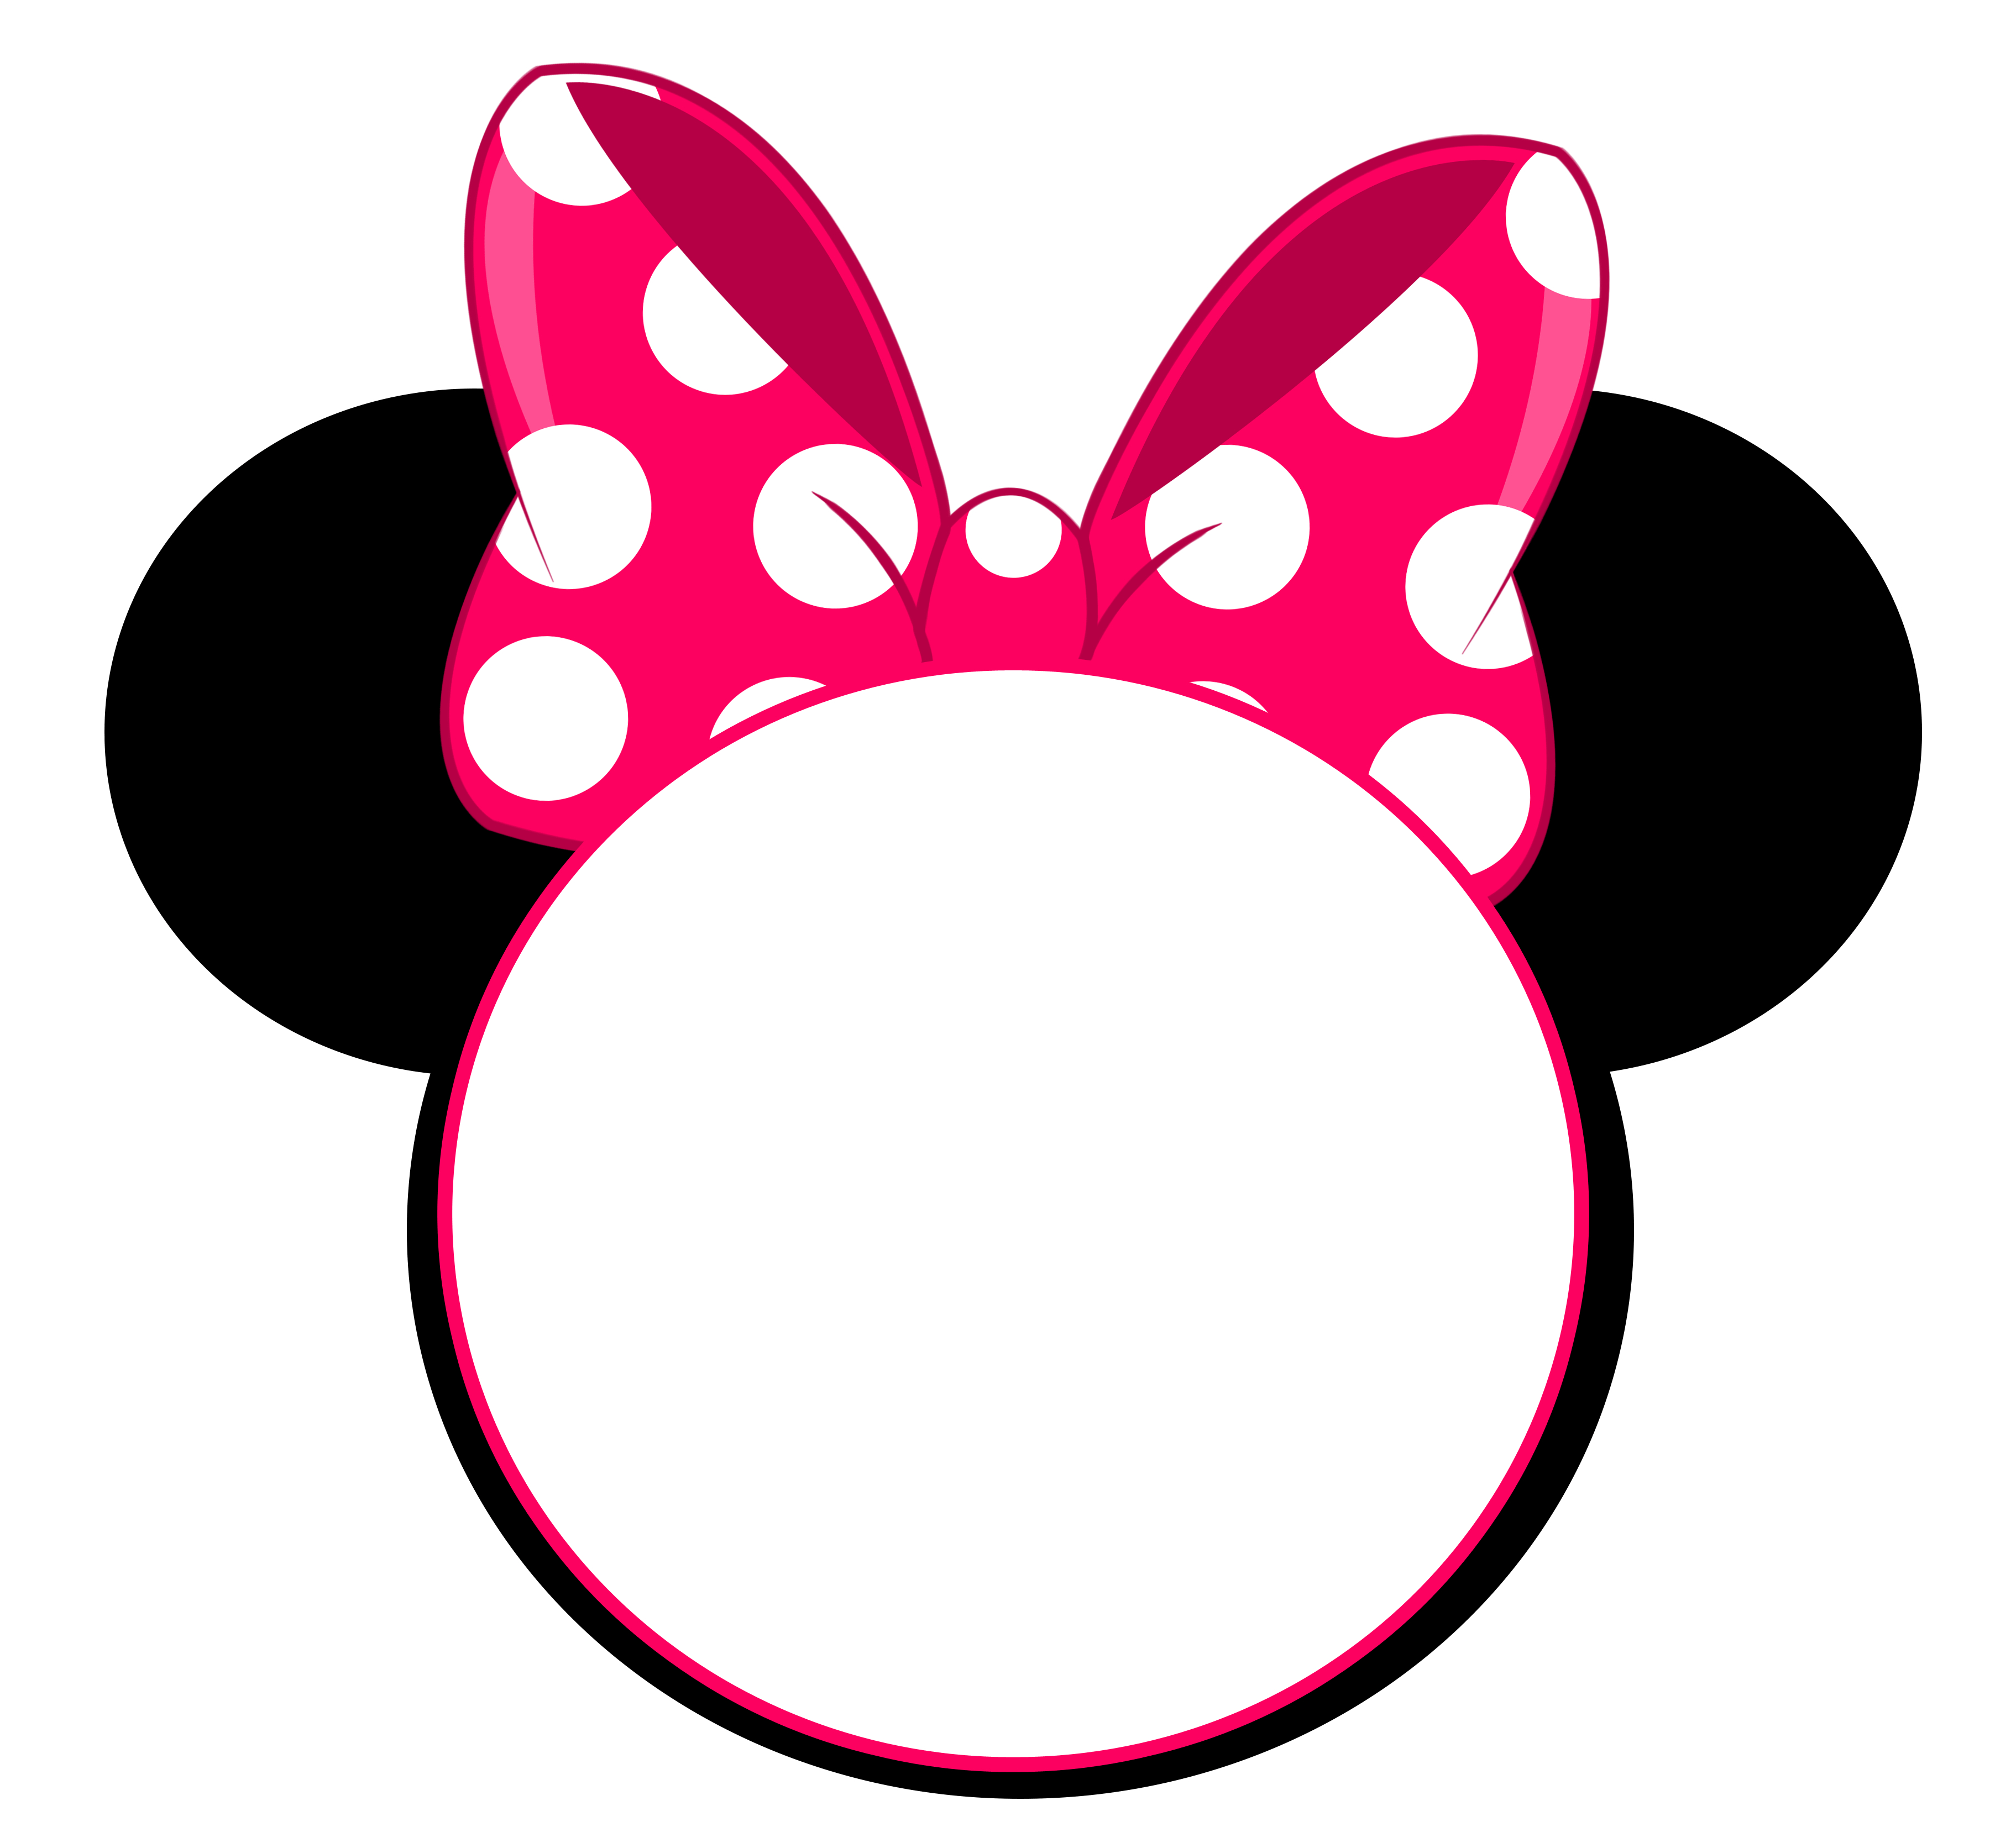 graphic relating to Printable Minnie Mouse Head Template named Minnie Mouse Brain Invitation Template Office Template Designs